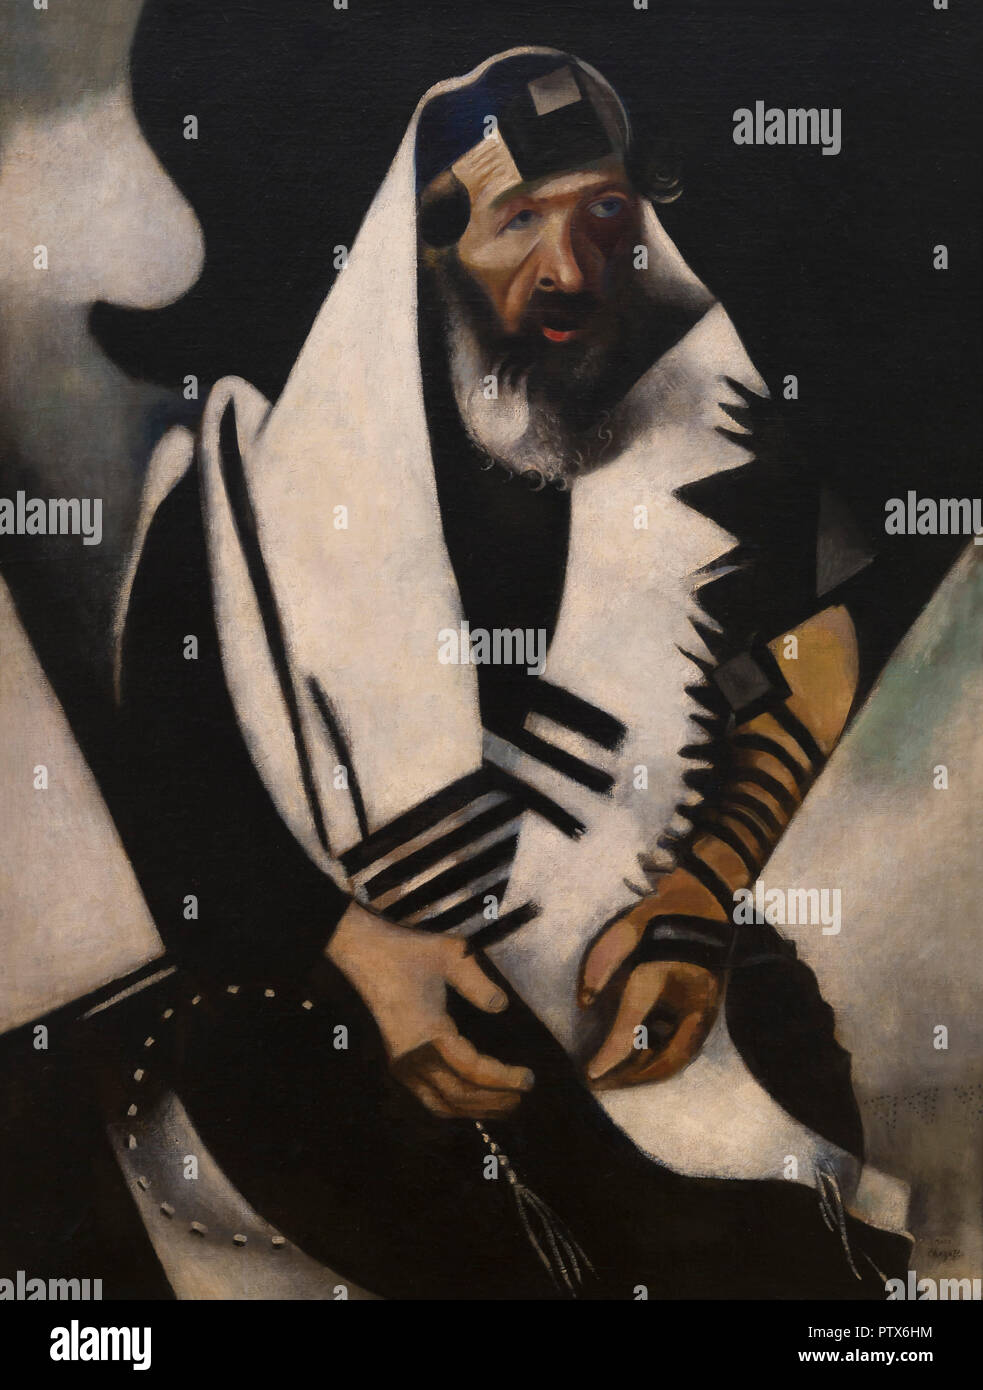 The Praying Jew, Marc Chagall, 1923, Art Institute of Chicago, Chicago, Illinois, USA, North America - Stock Image